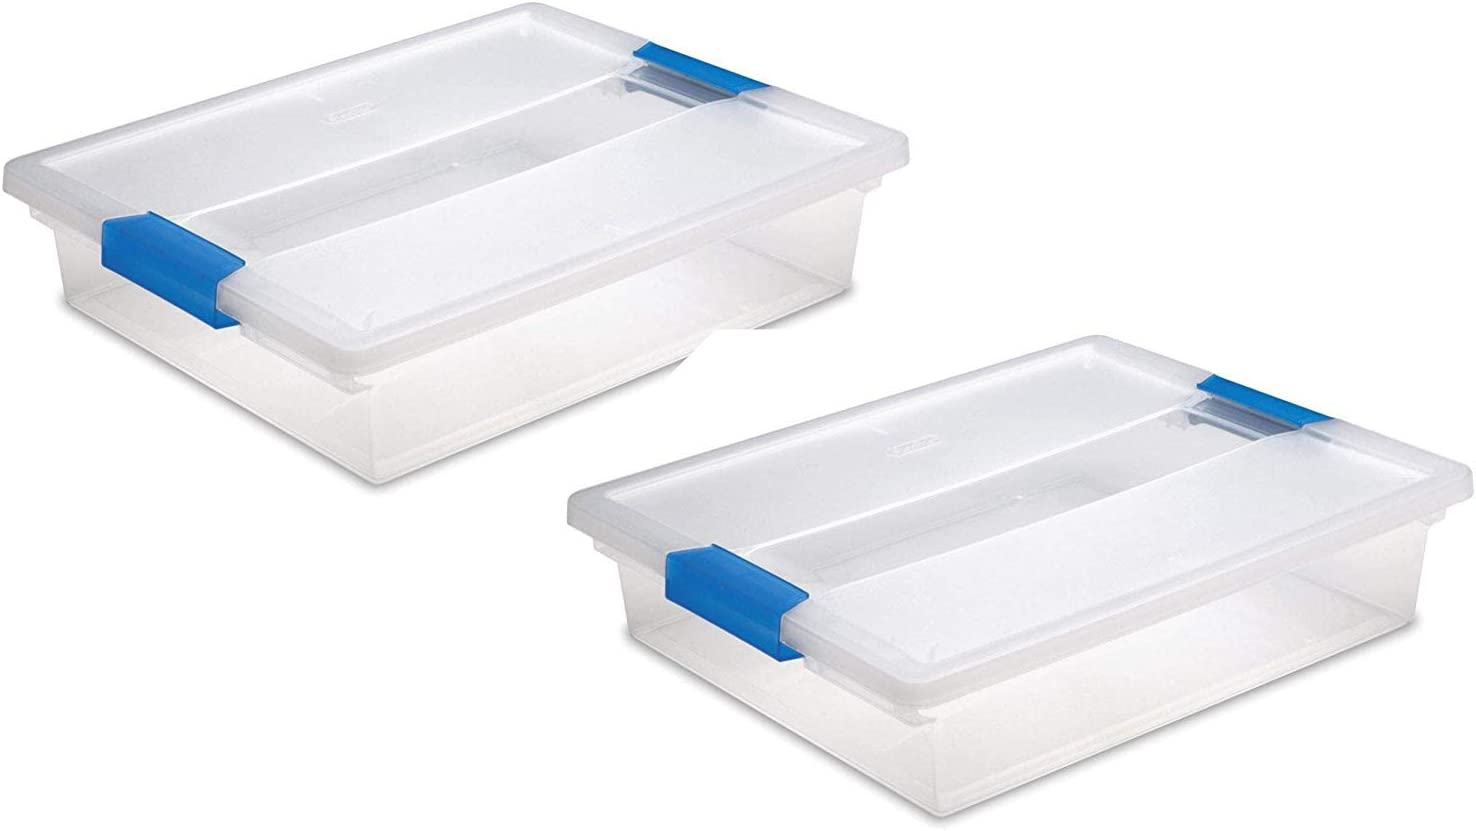 STERILITE Large Clip Box, Clear with Blue Aquarium Latches, 2 Pack